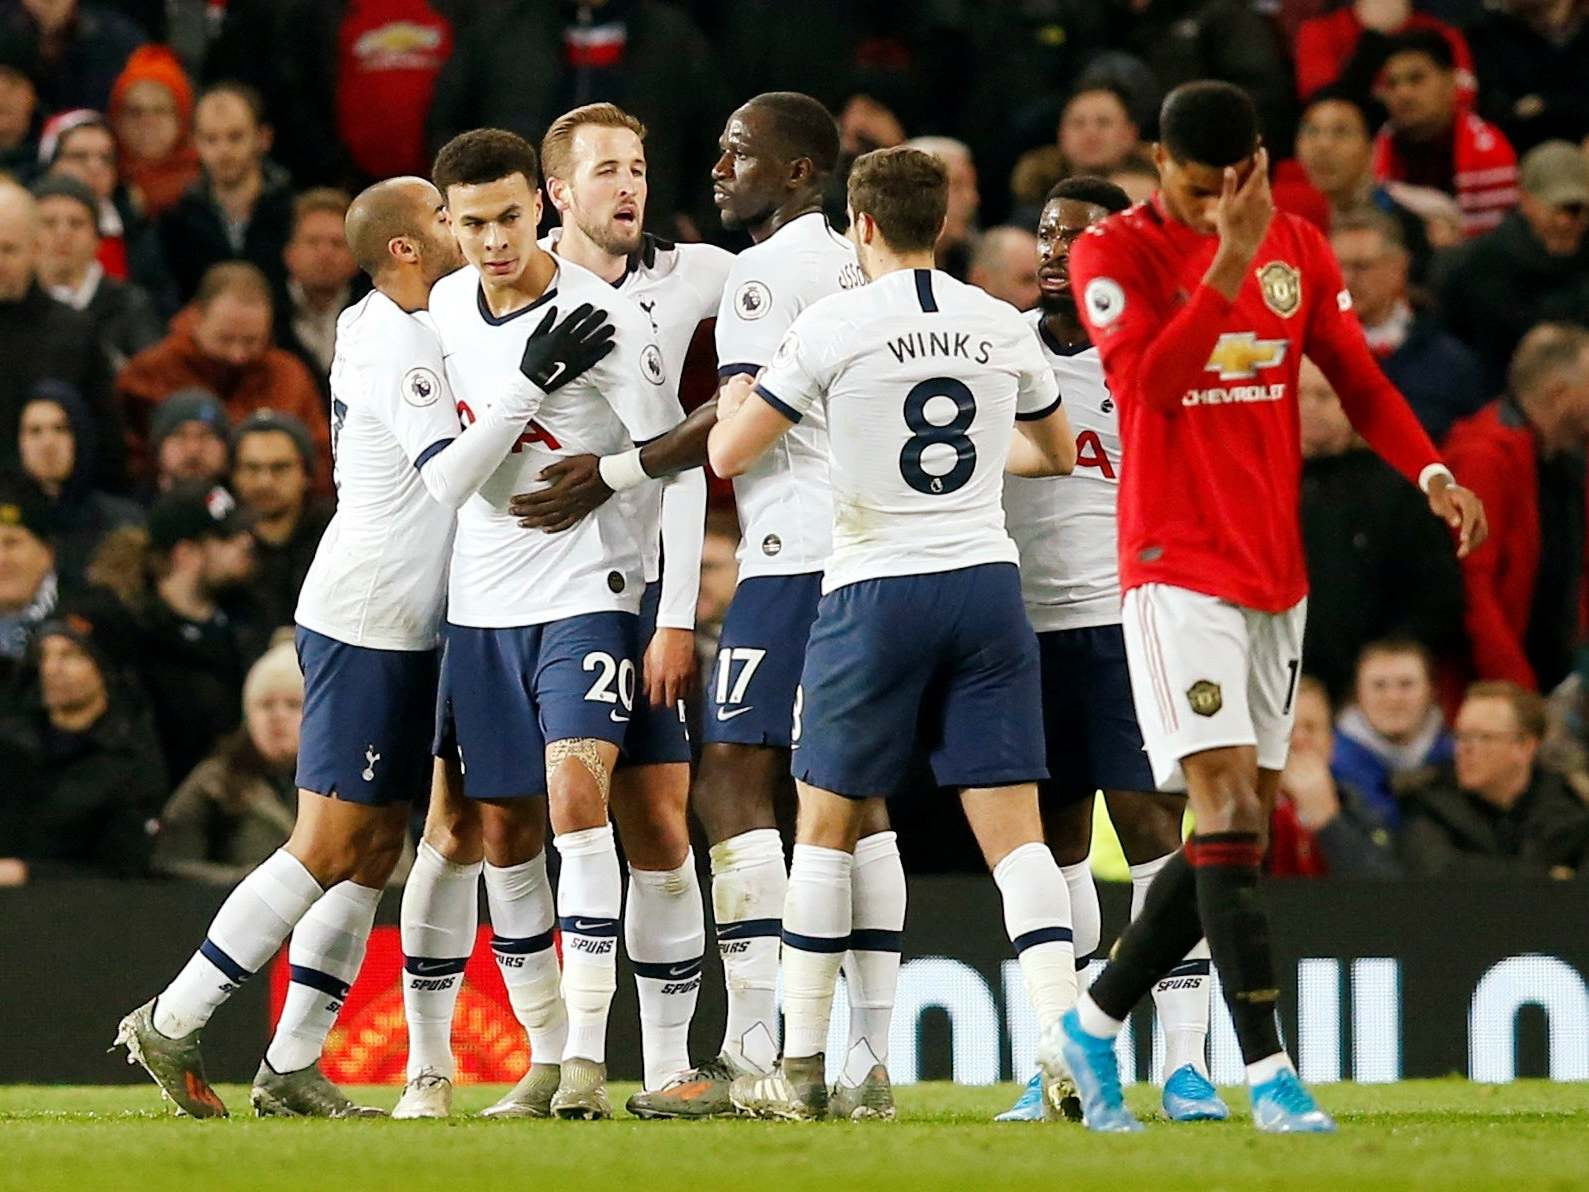 Manchester United vs Tottenham LIVE: Latest Premier League updates tonight